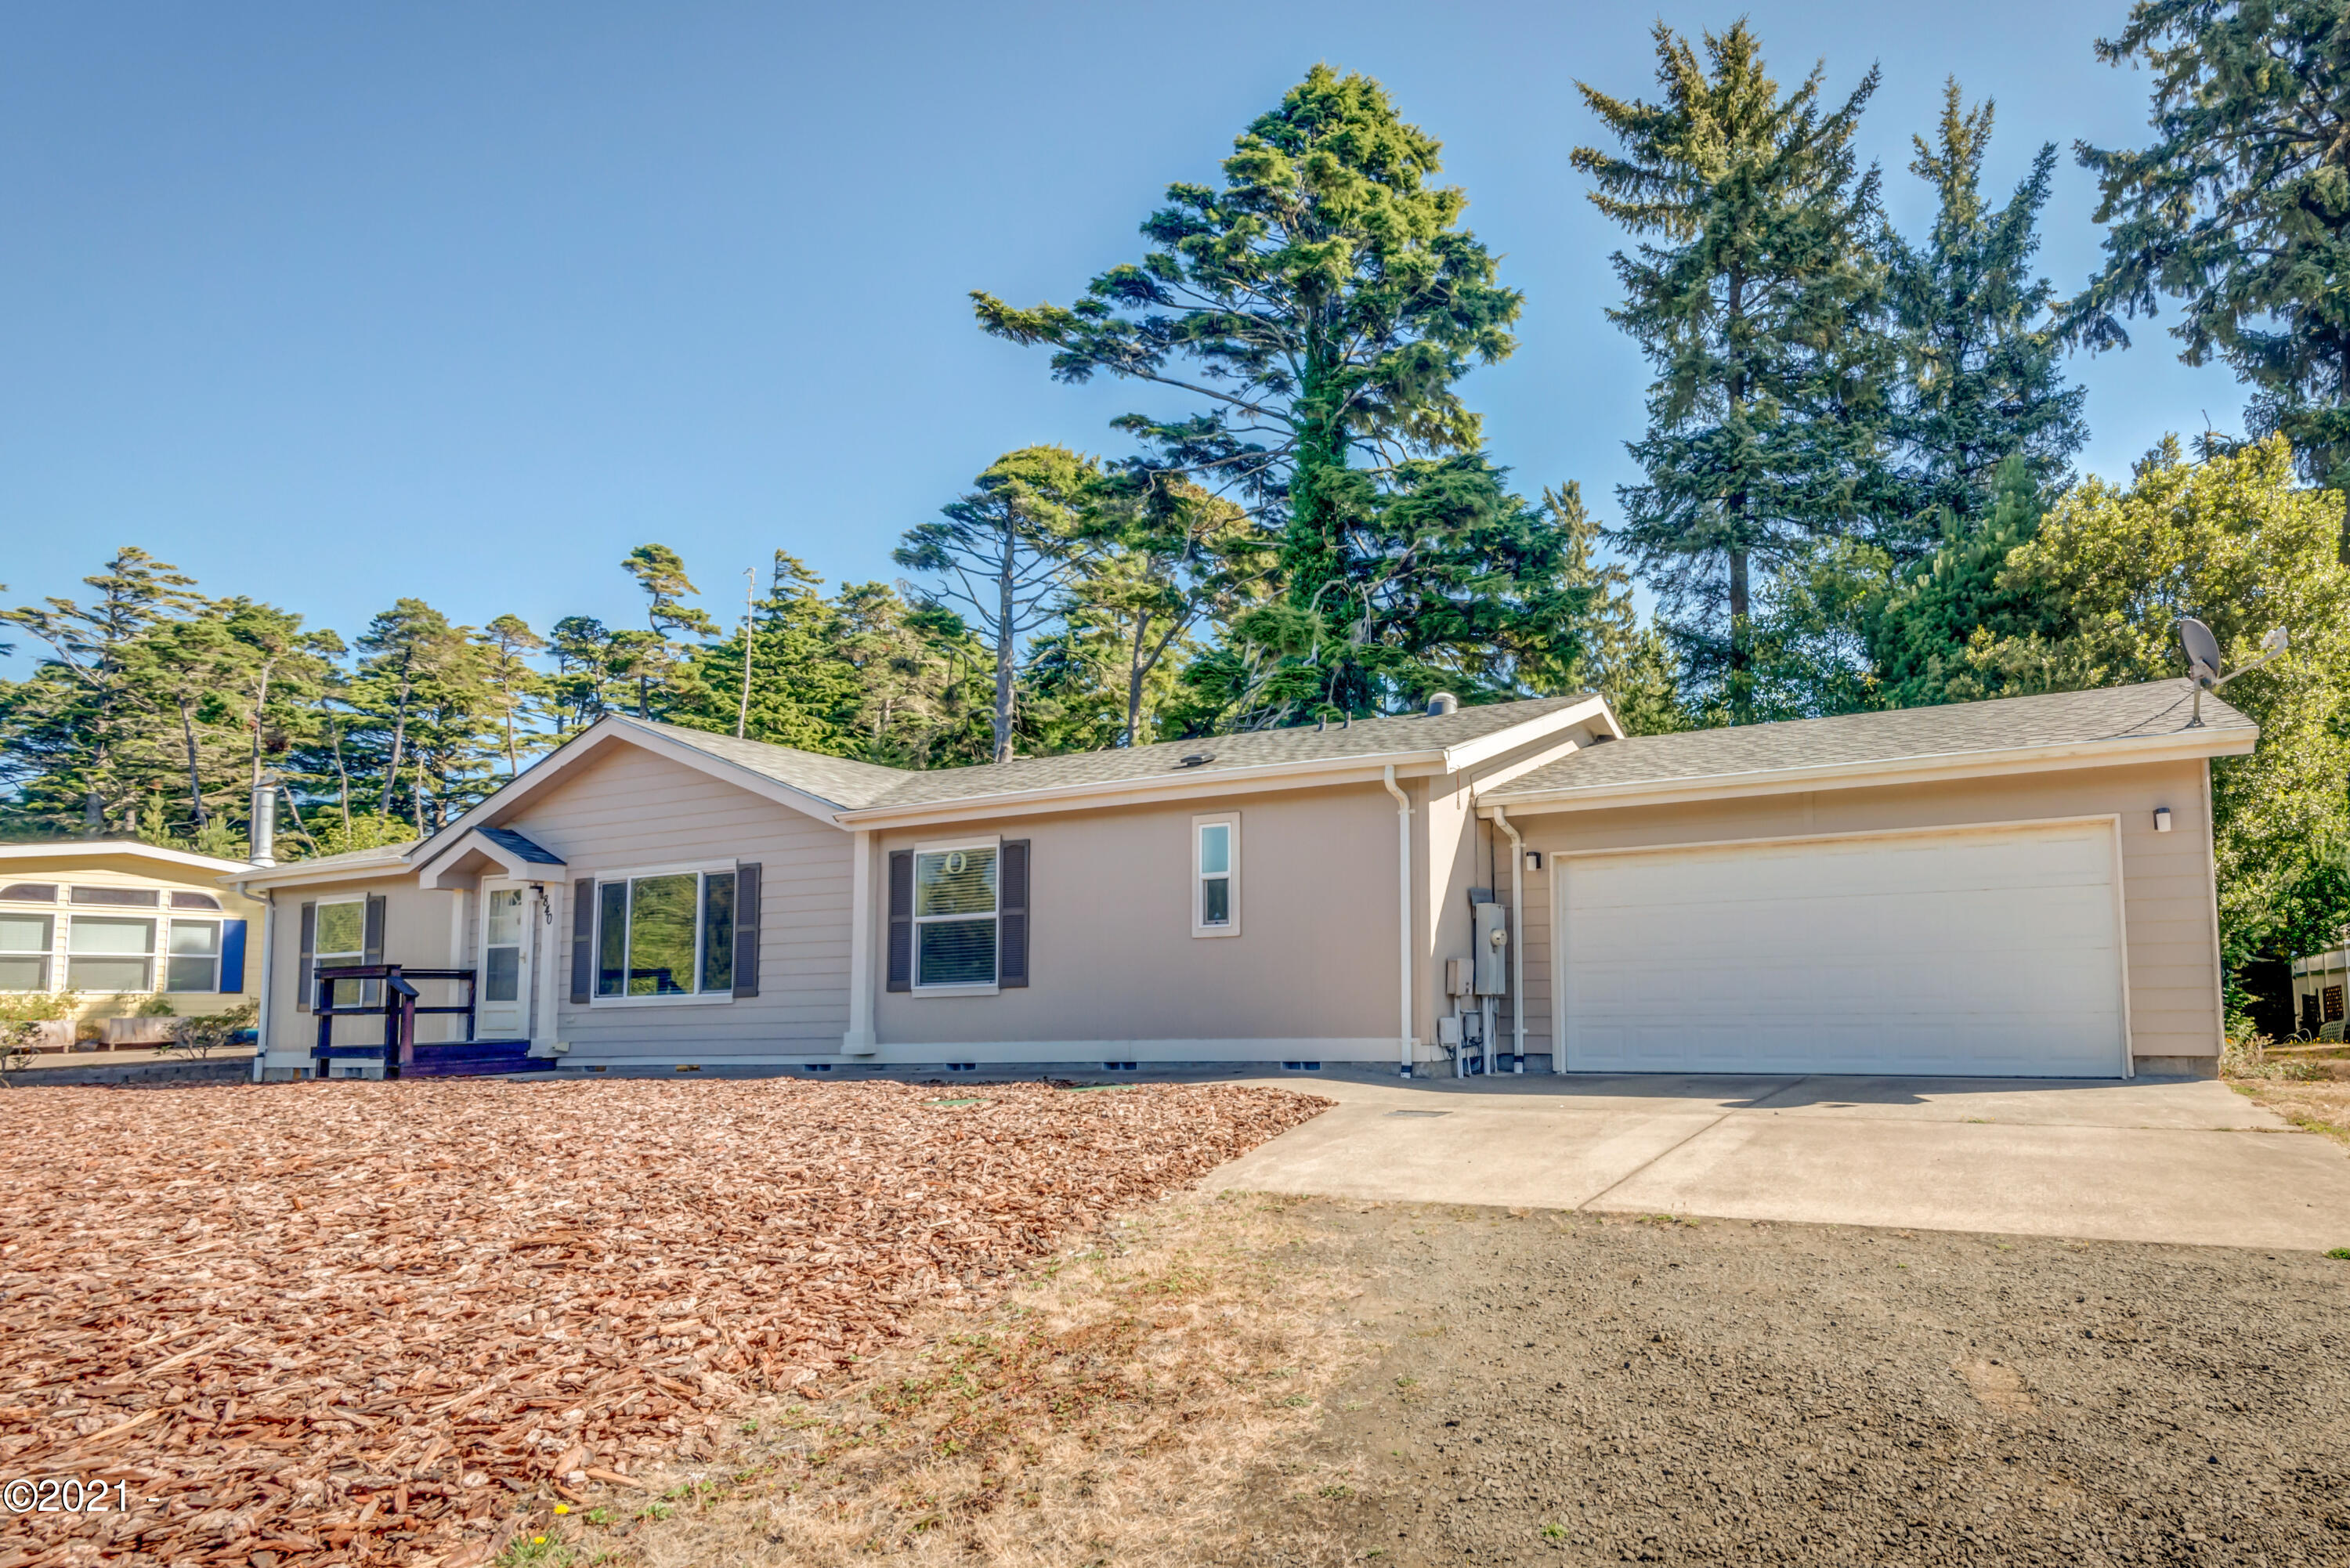 840 NW Grouse St, Seal Rock, OR 97376